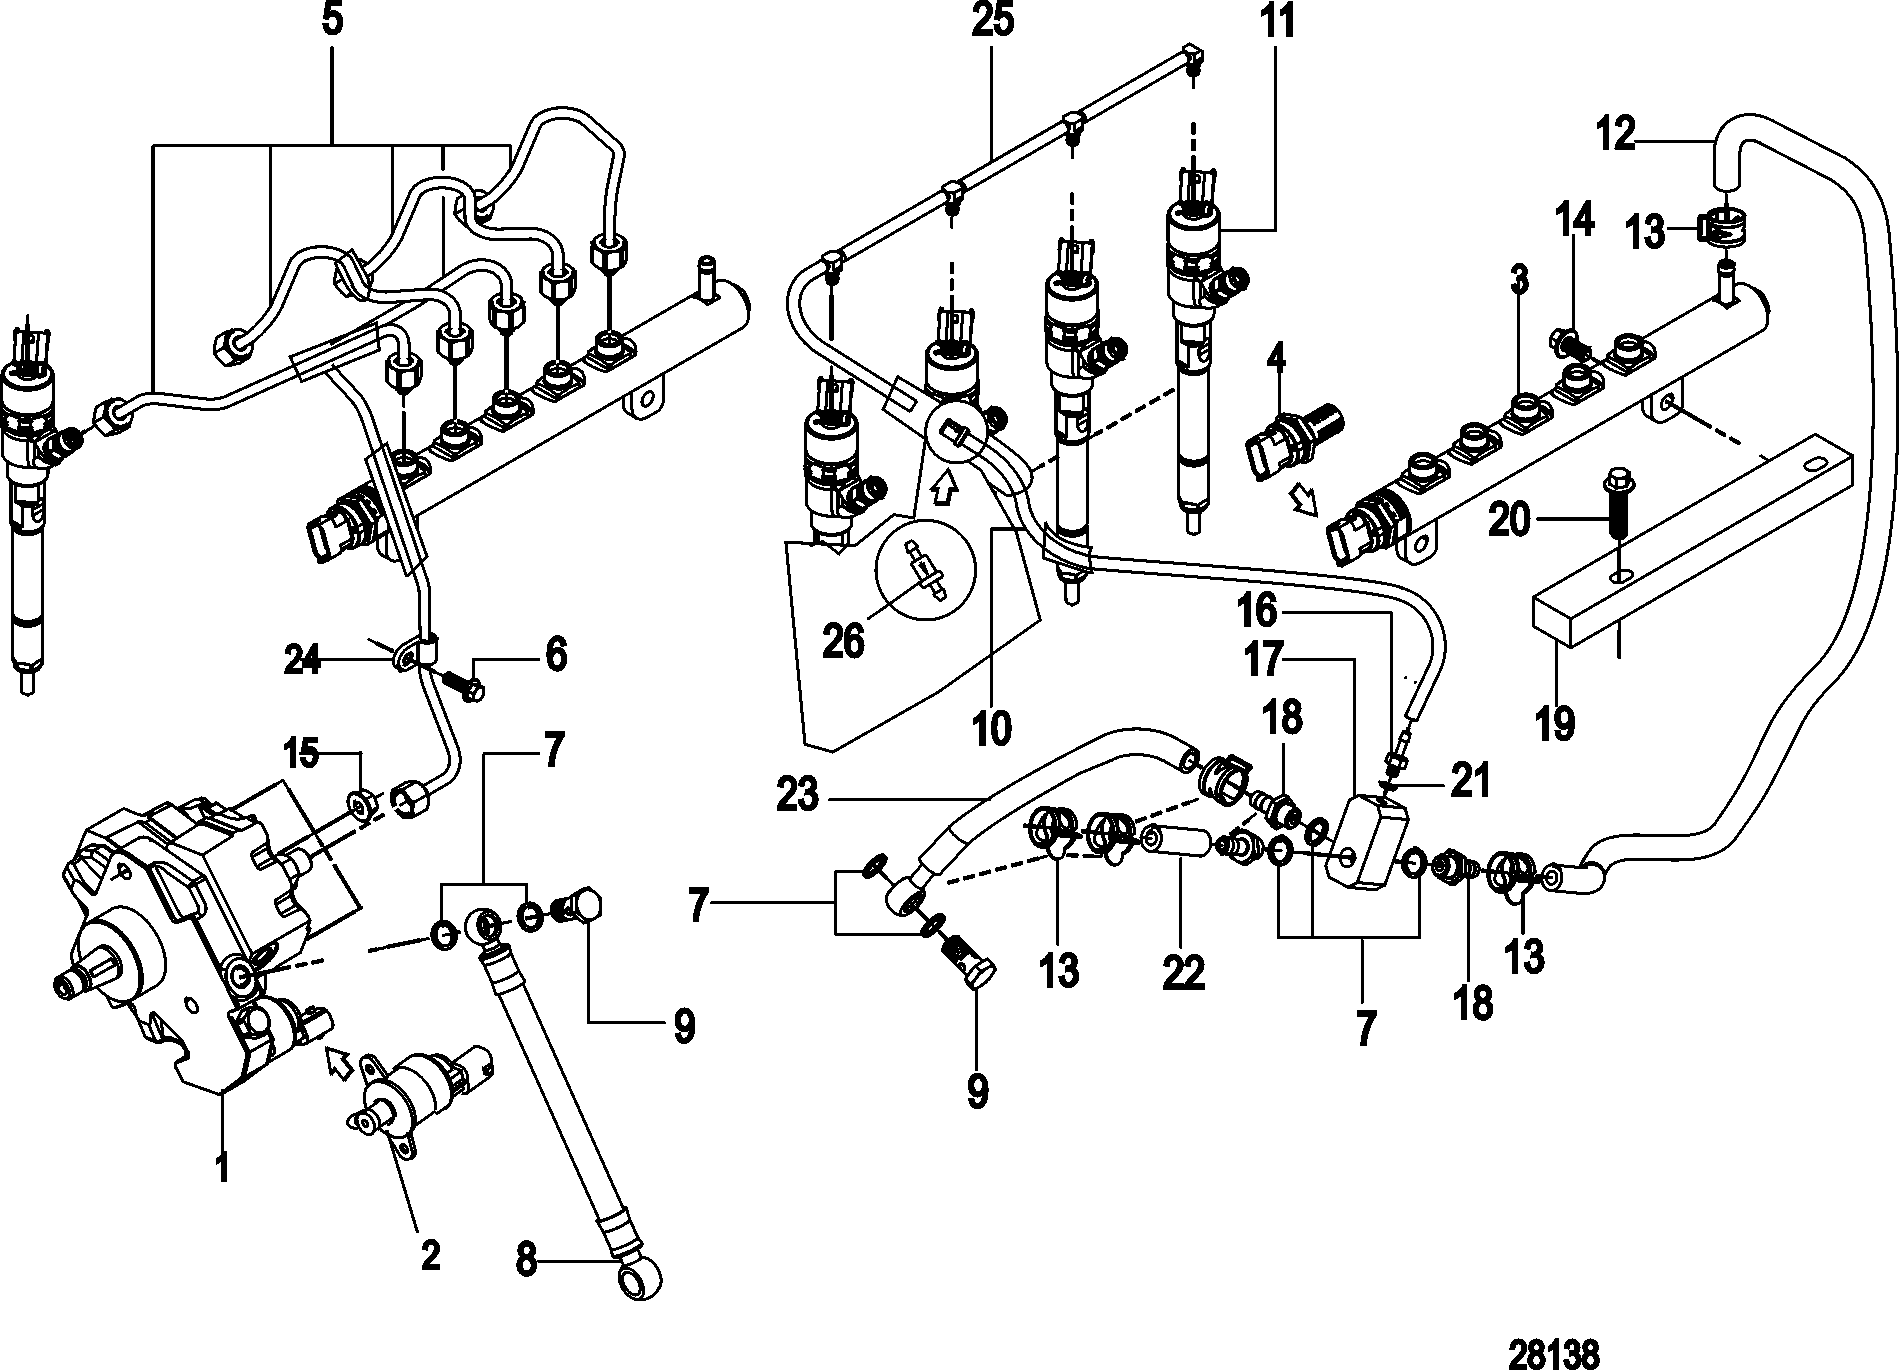 12 valve cummins fuel system diagram healthy heart bosch p7100 injection pump parts wiring and fuse box